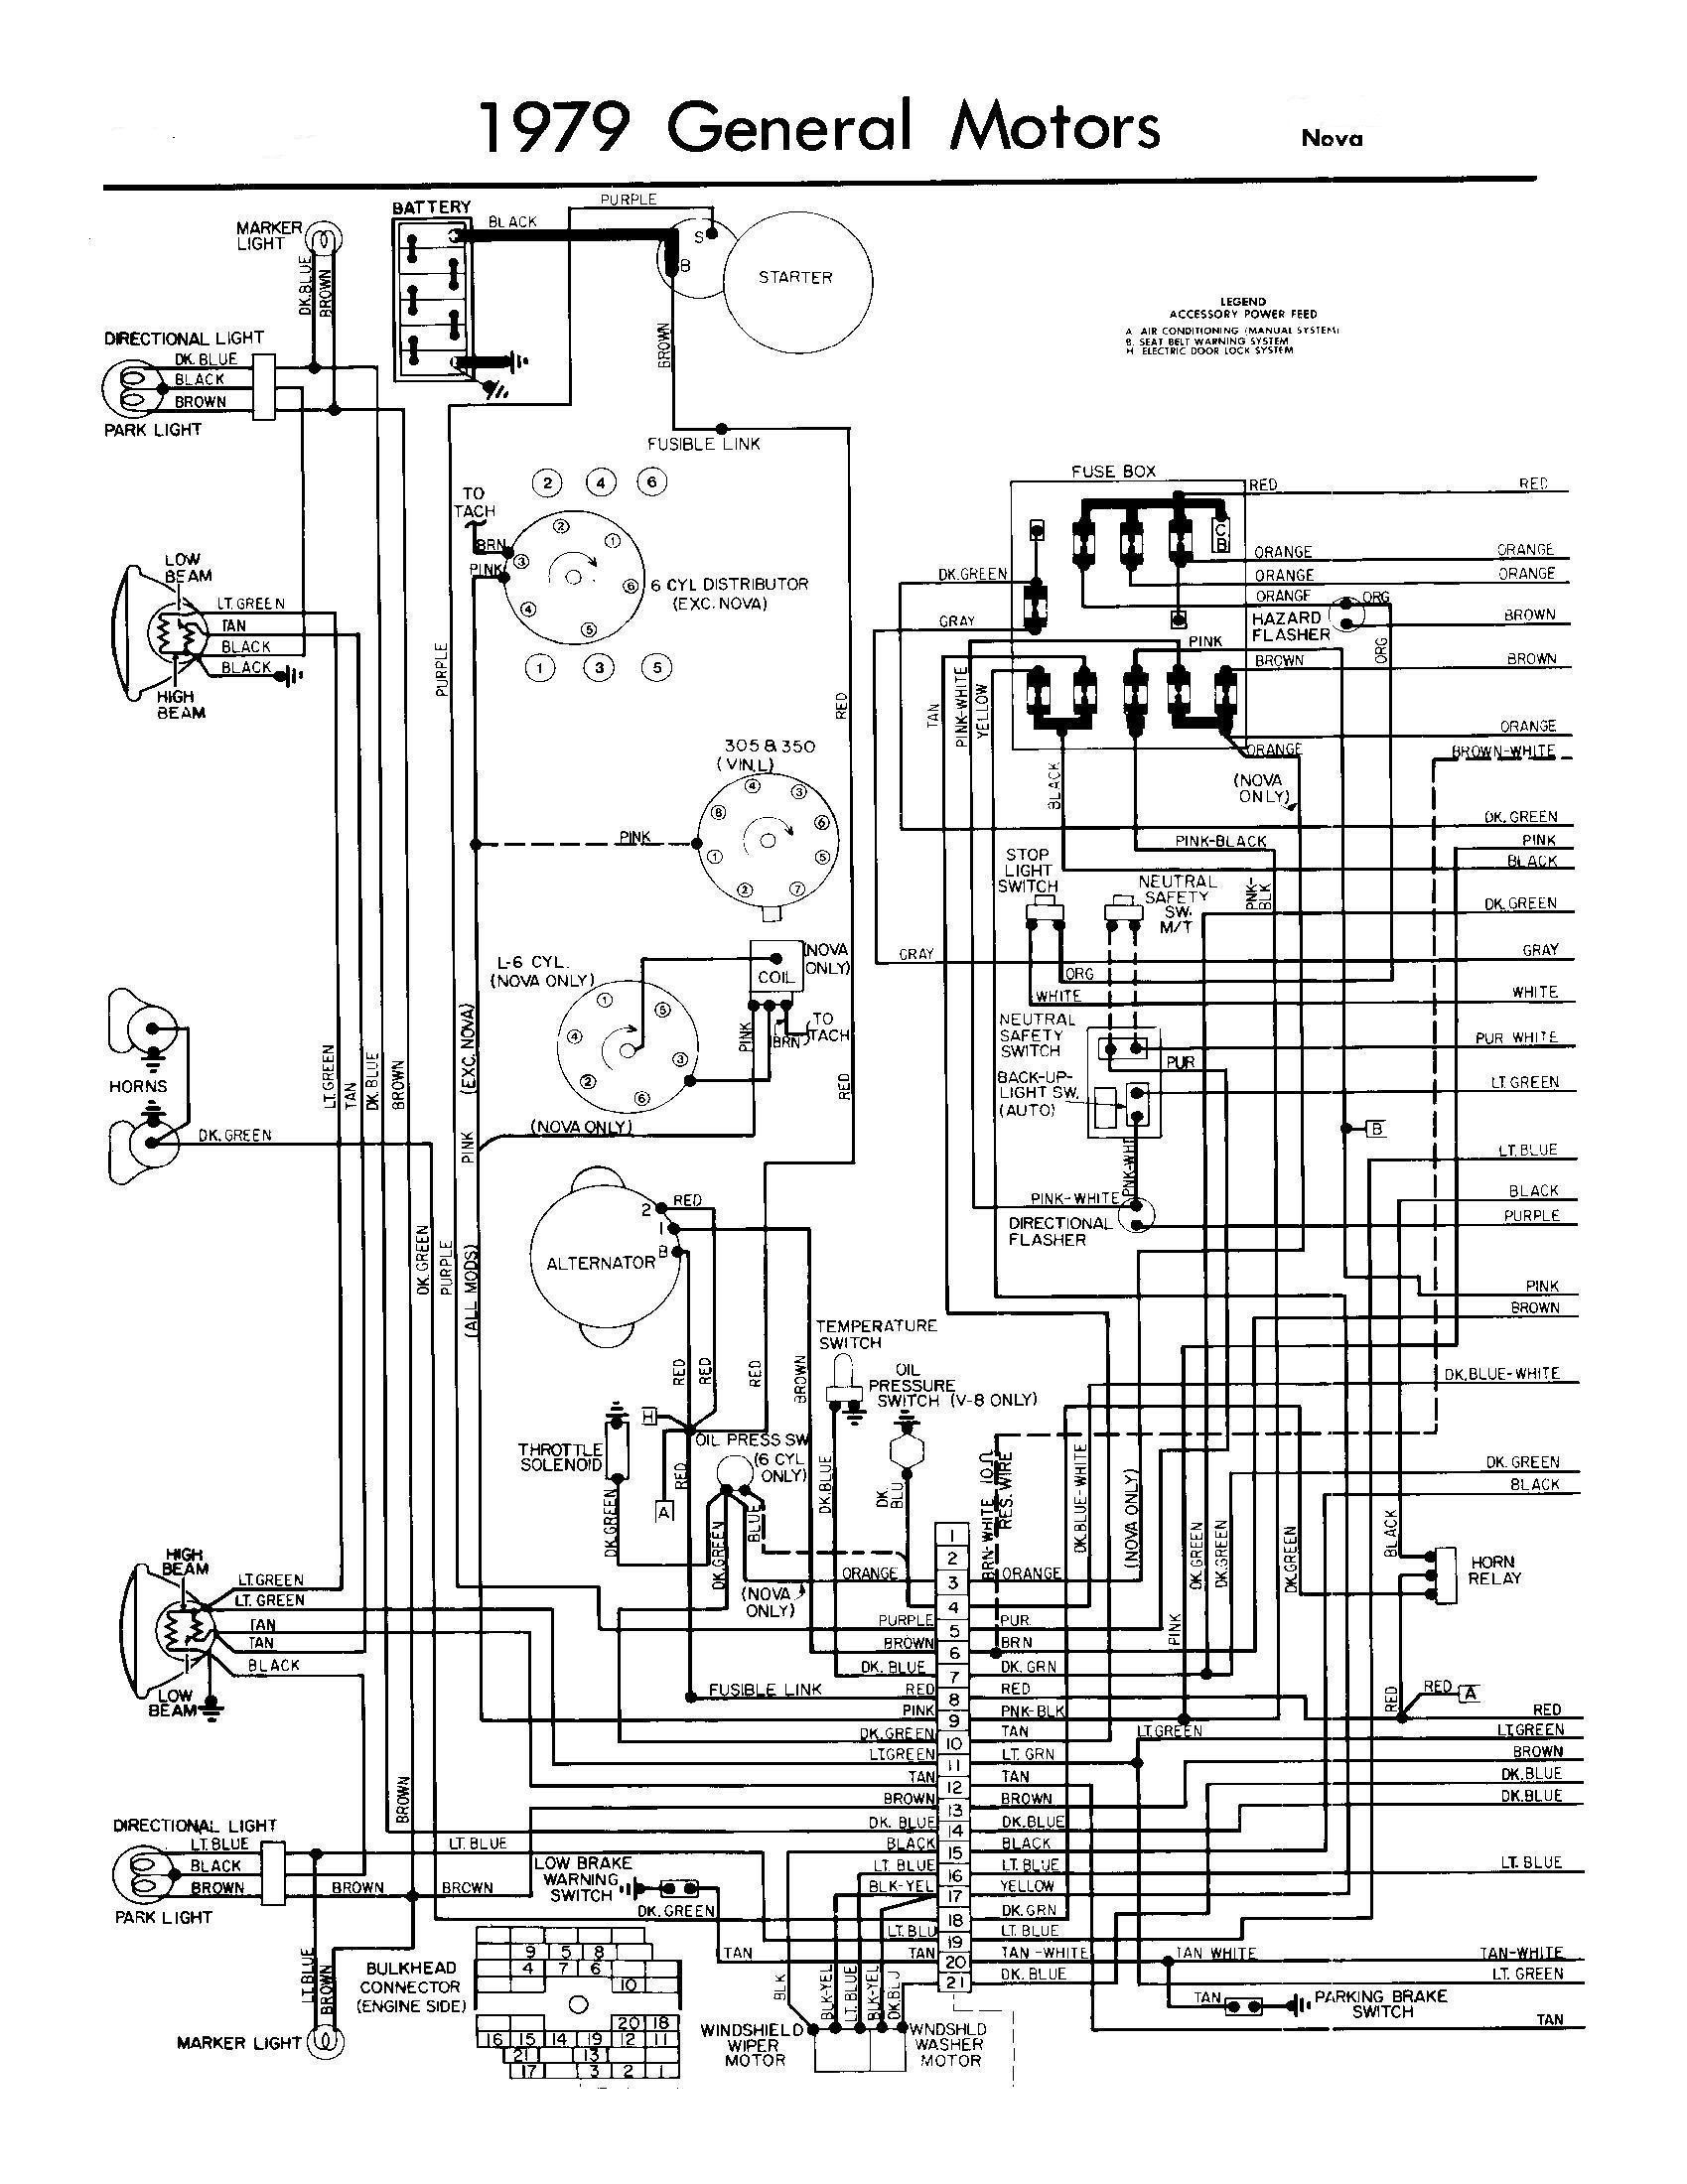 1975 gmc blazer wiring wiring diagrams best 1975 gmc blazer wiring wiring diagram online 75 blazer convertible 1975 chevy blazer wiring diagram data